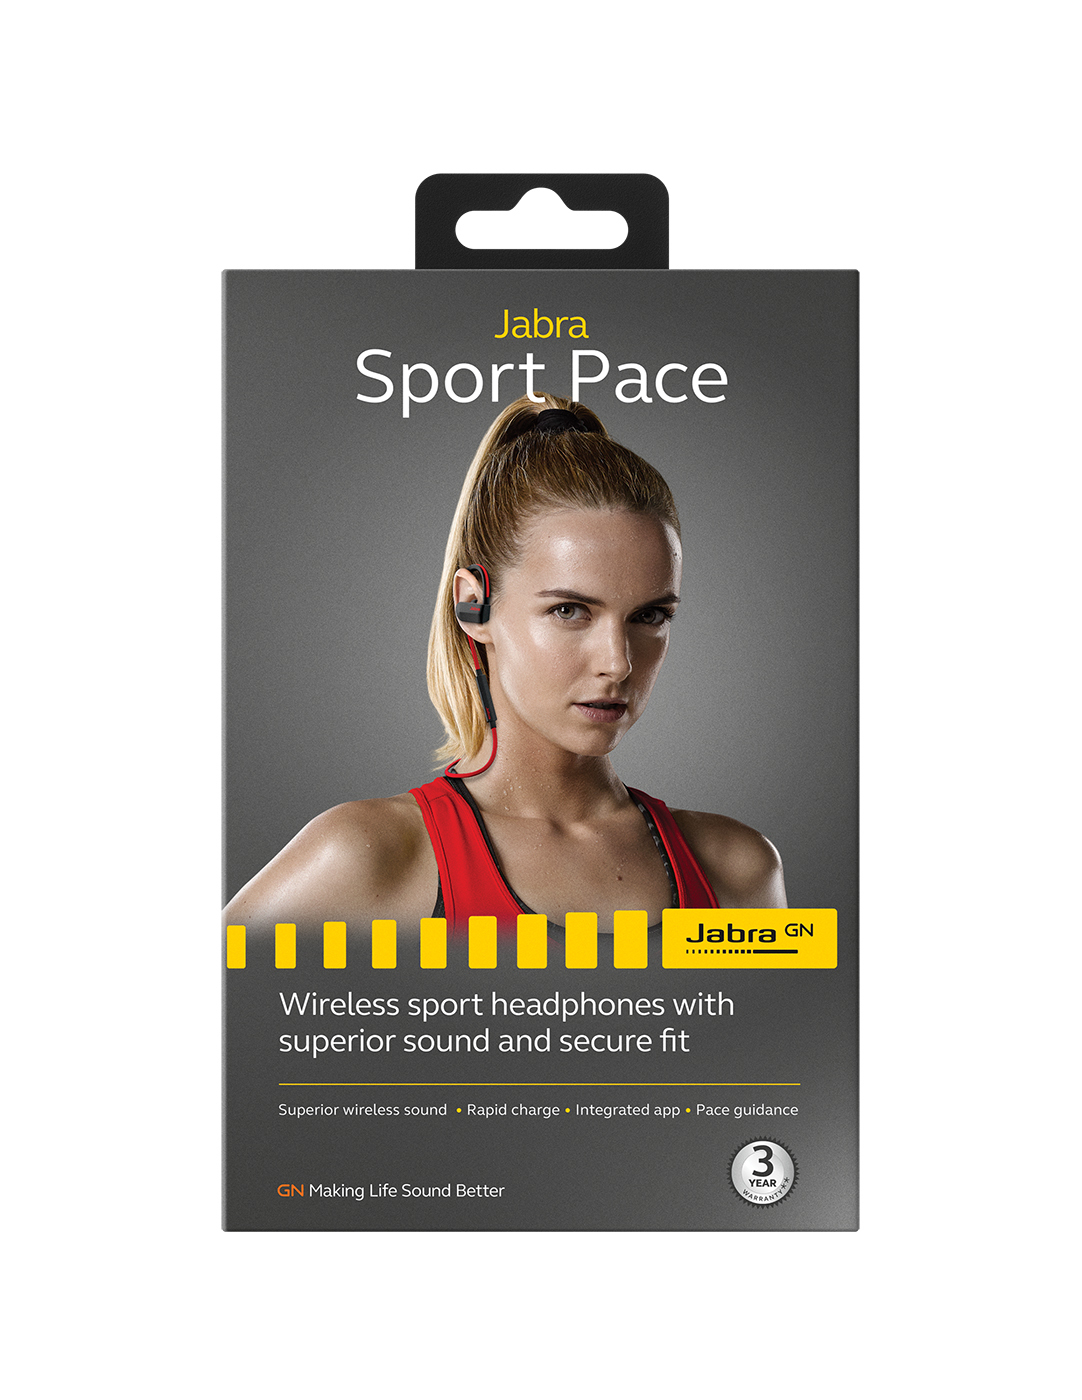 Jabra%20Sport%20Pace%20red%20package1.jpg